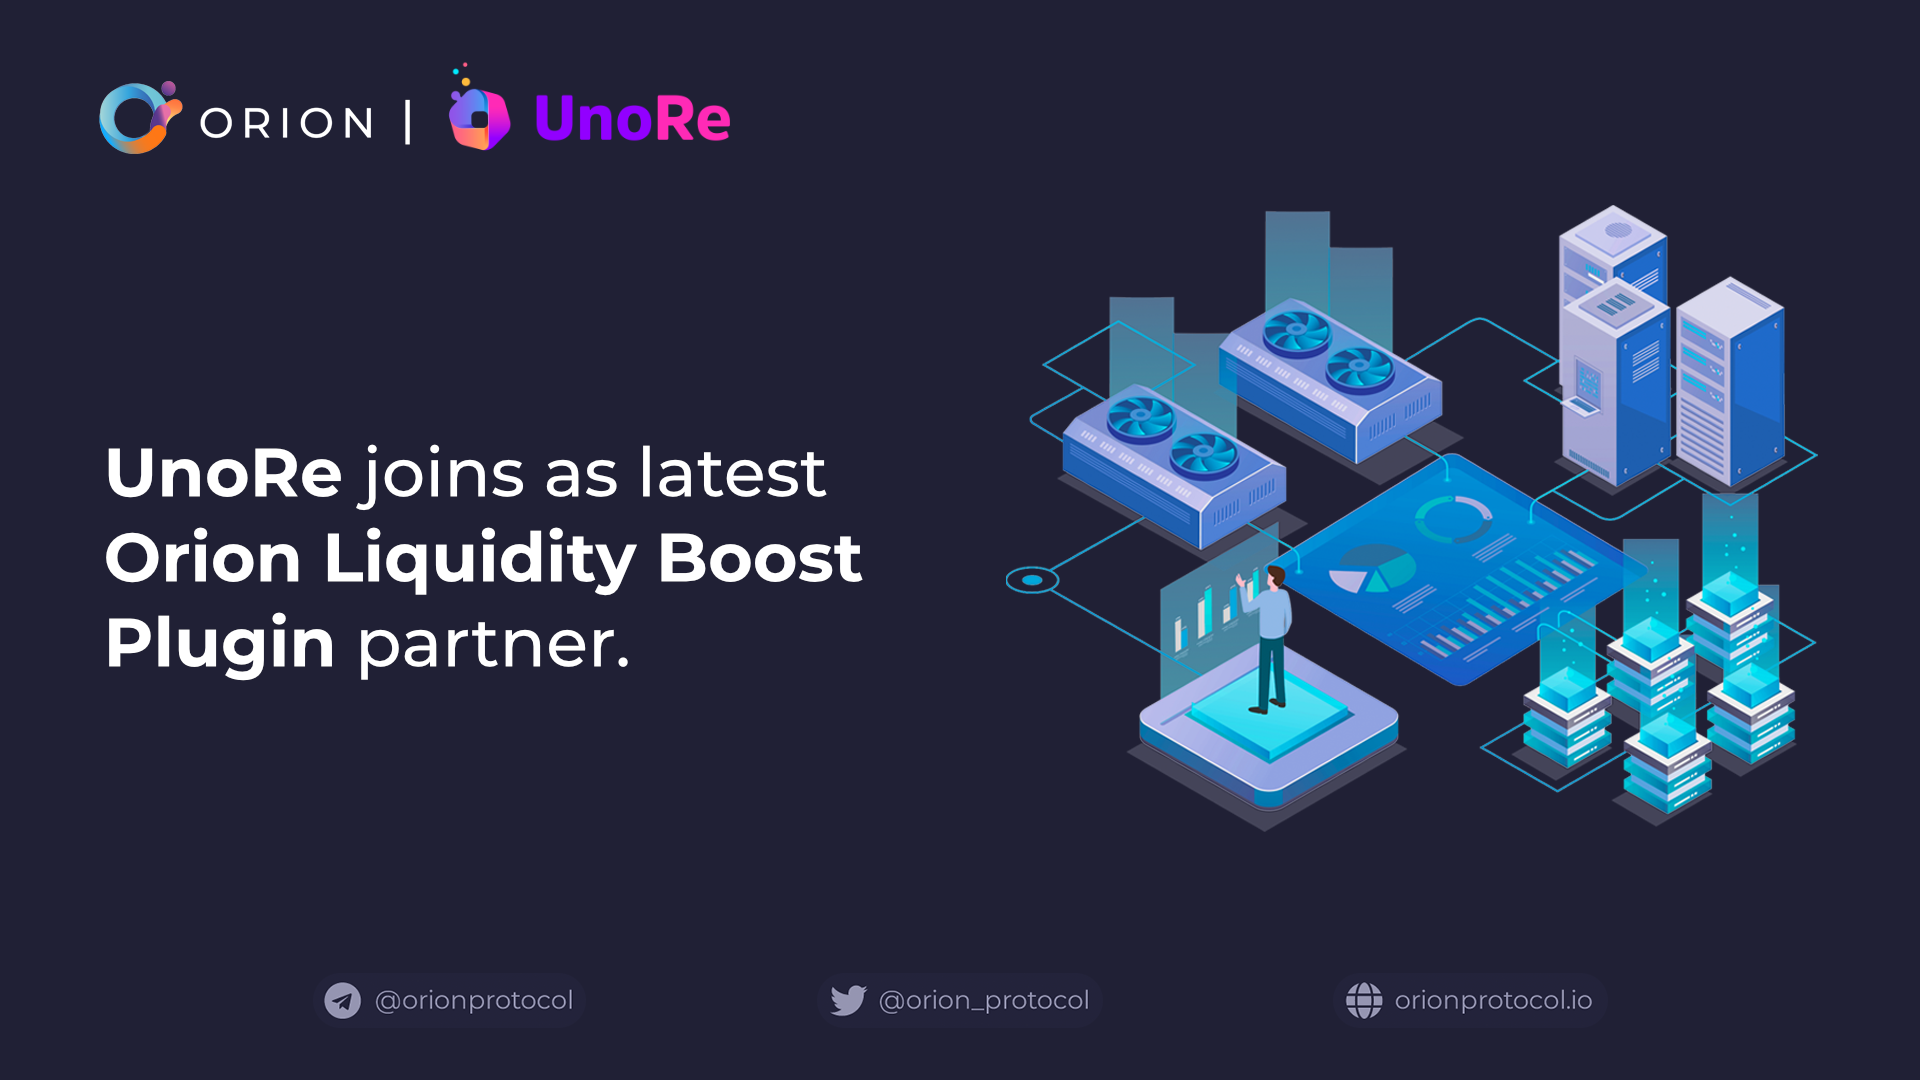 UnoRe joins as Orion Liquidity Boost Plugin partner